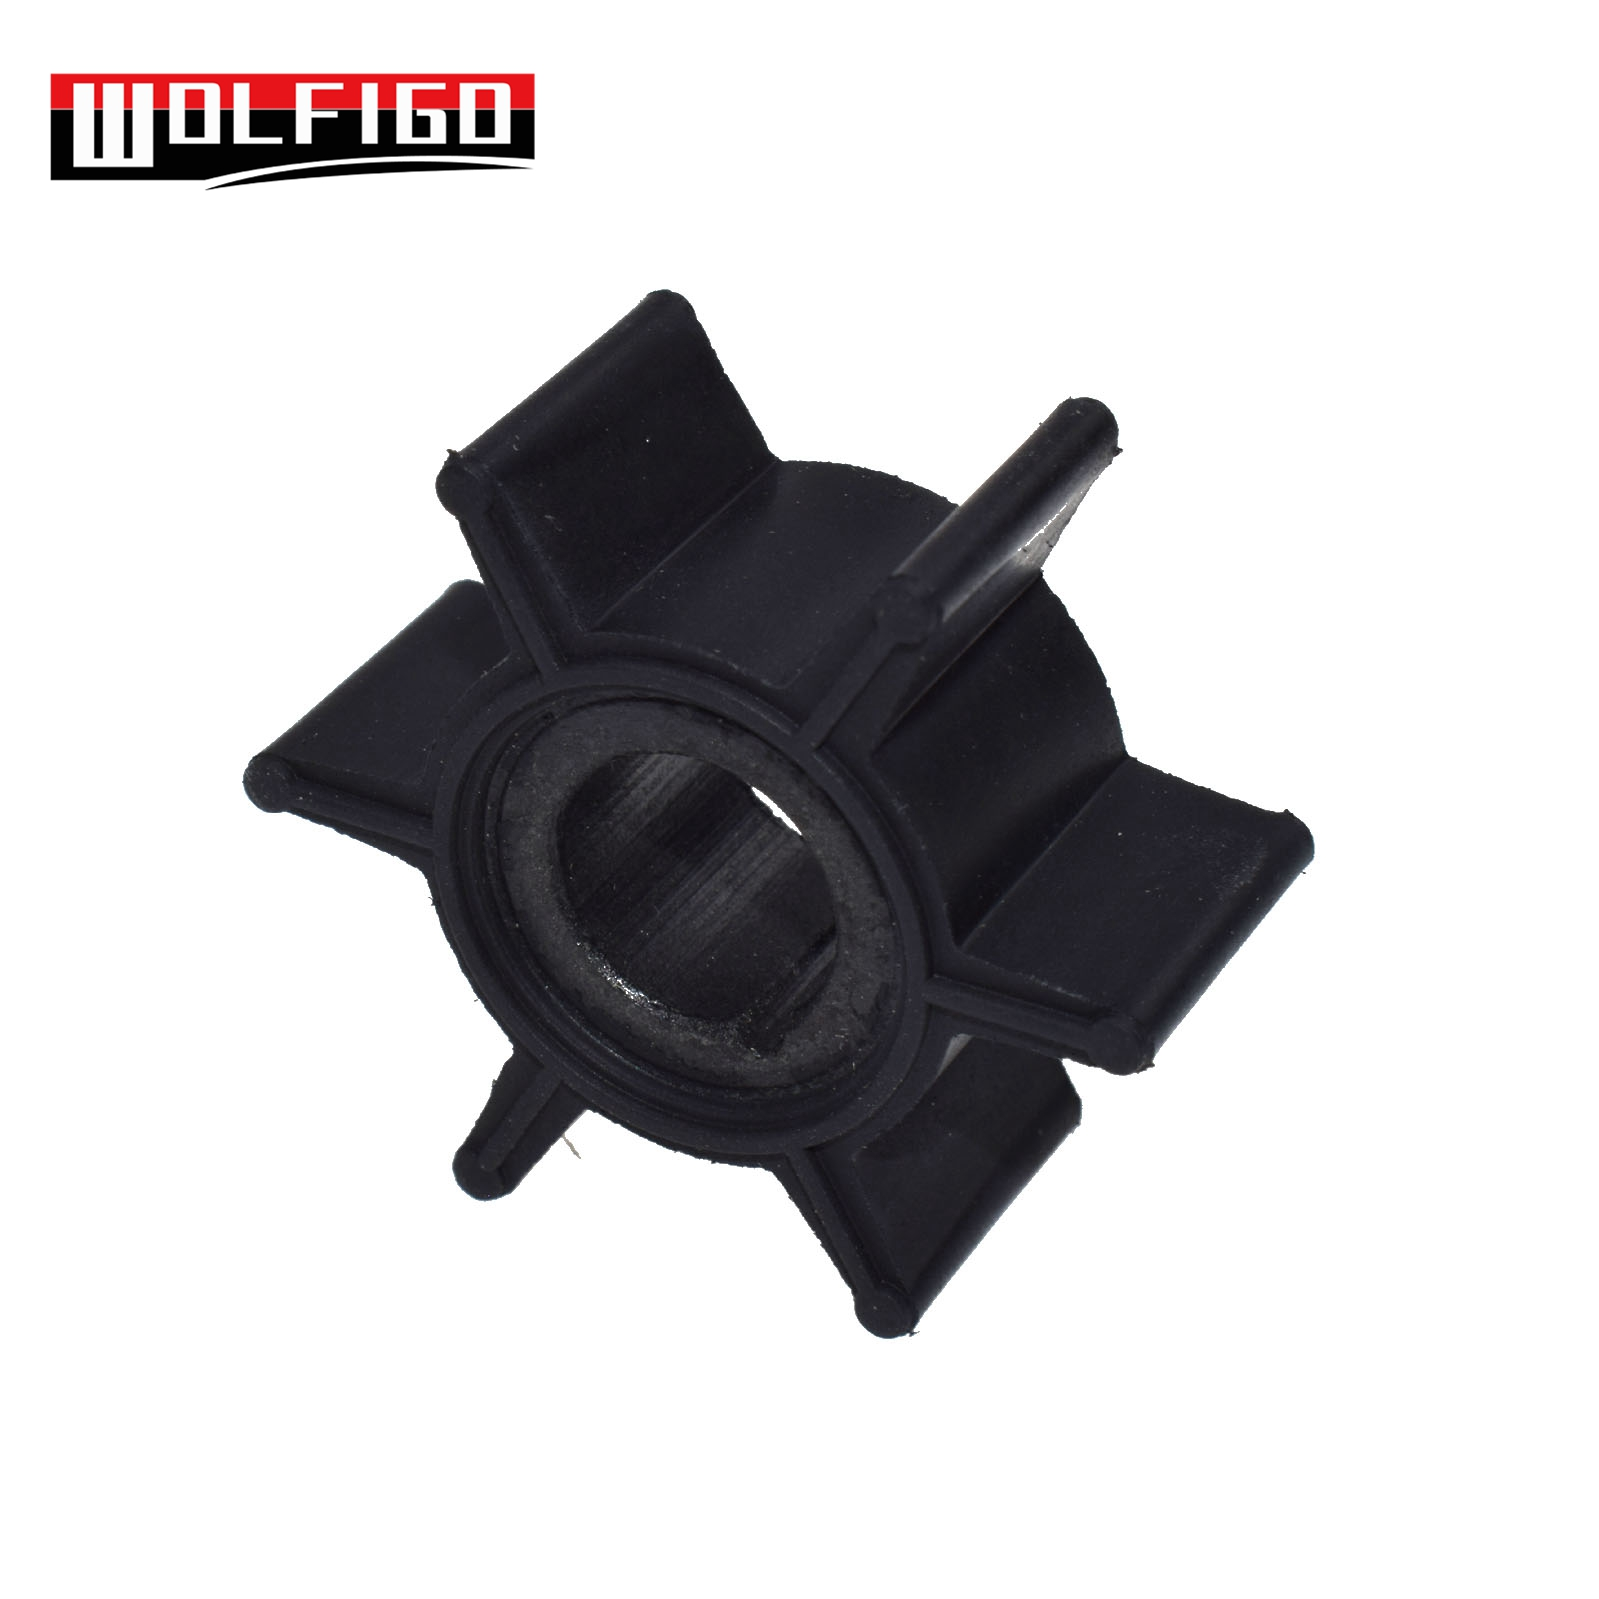 For Mercury Mariner Nissan Tohatsu 2-6 25-50 Hp Water Pump Impeller 47-161543